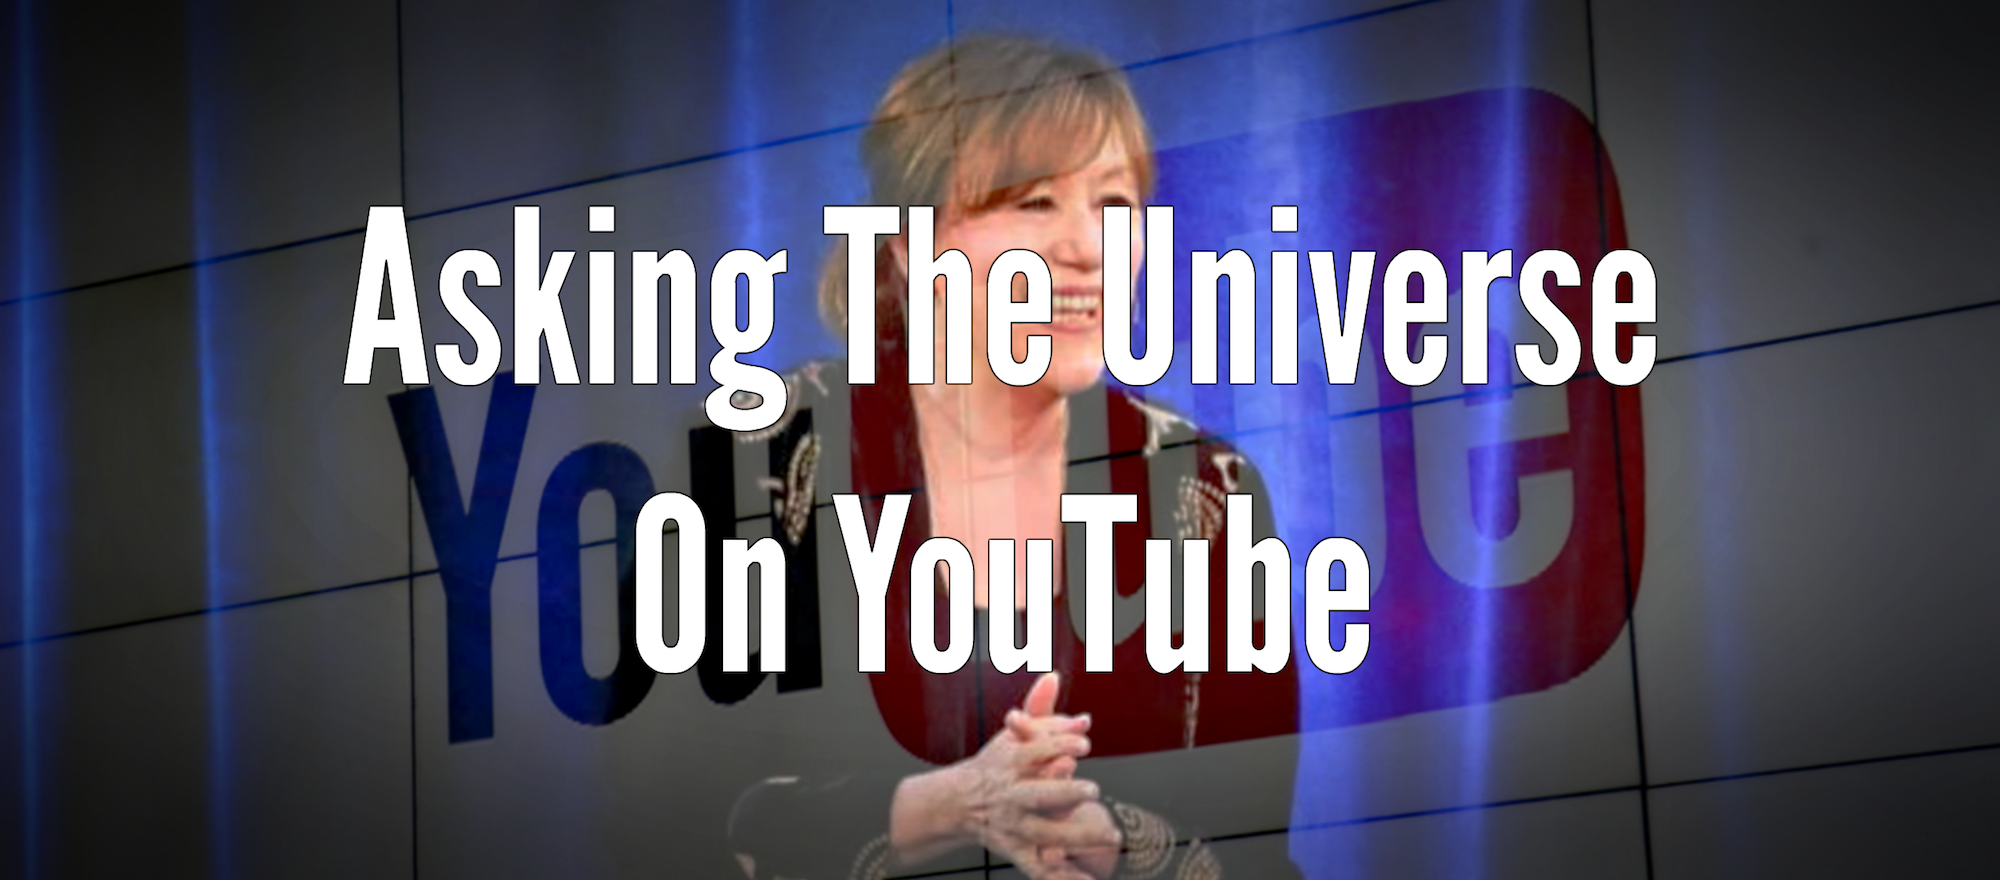 Asking the Universe on YouTube by John T Strasser